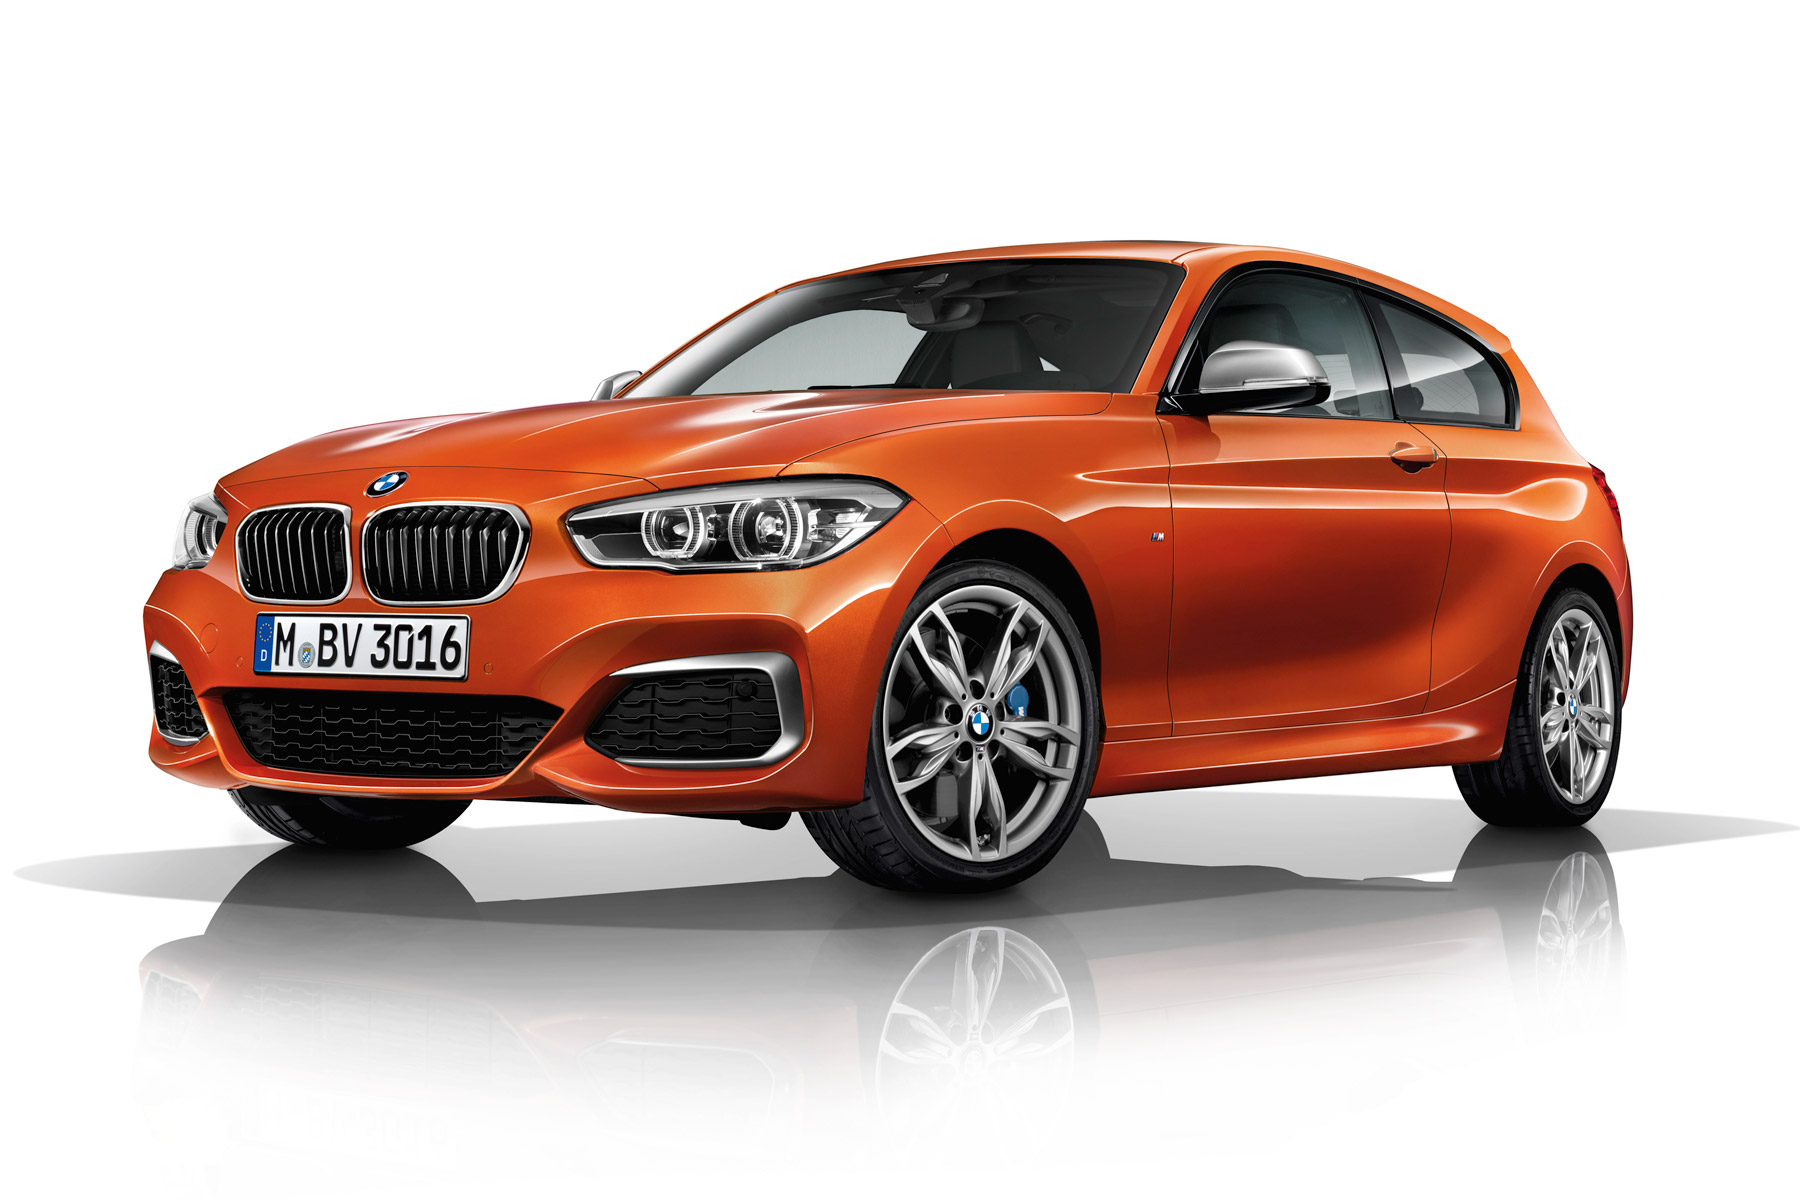 New BMW M140i and M240i will hit 62mph in 4.6 seconds